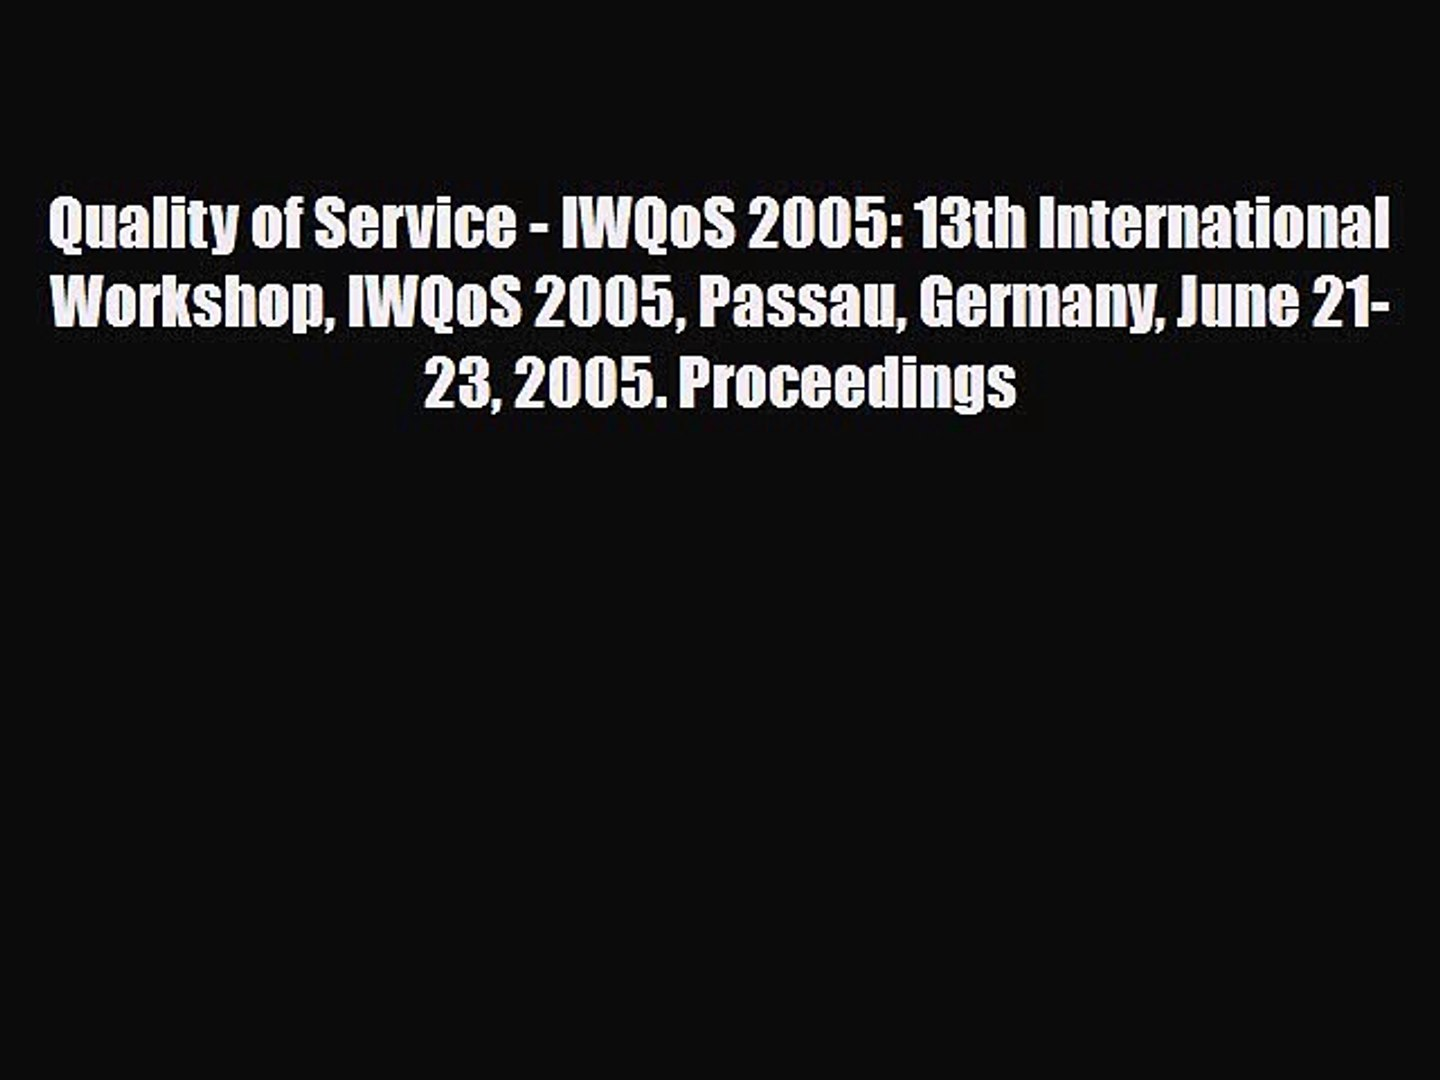 [PDF] Quality of Service - IWQoS 2005: 13th International Workshop IWQoS 2005 Passau Germany